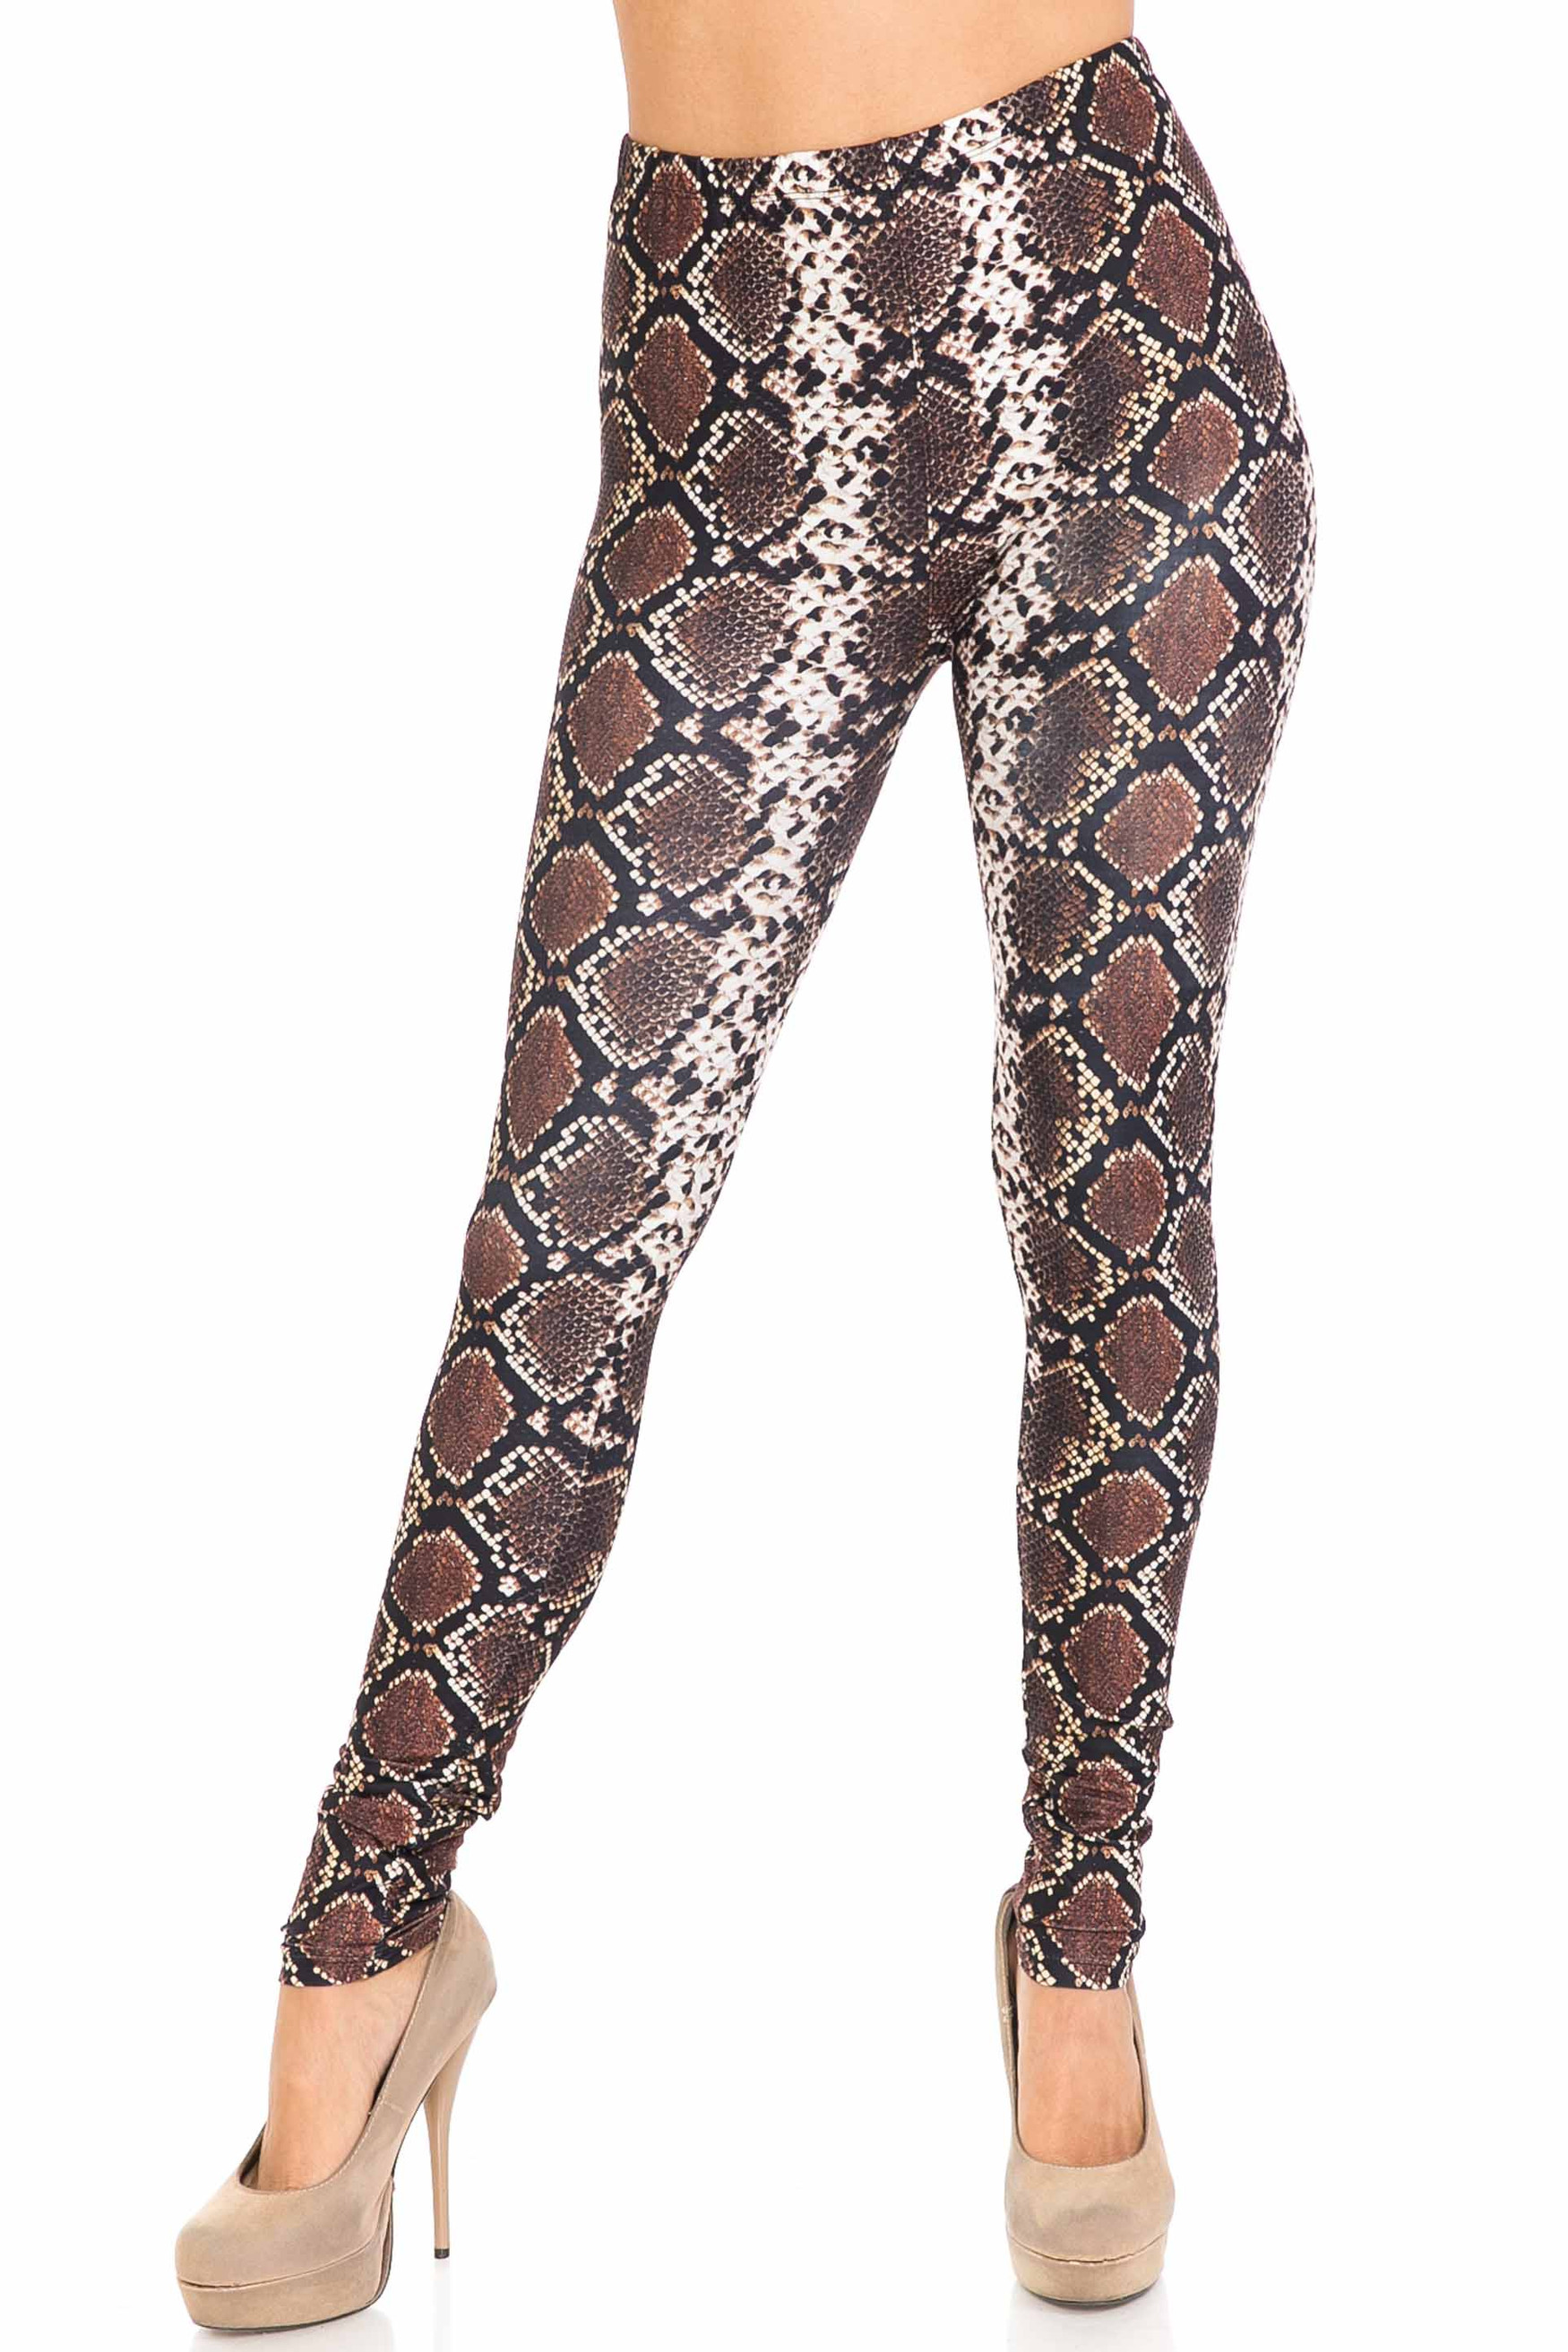 Front of Creamy Soft Brown Boa Extra Plus Size Leggings - 3X-5X - USA Fashion™ with a fitted skinny leg and full length hem.